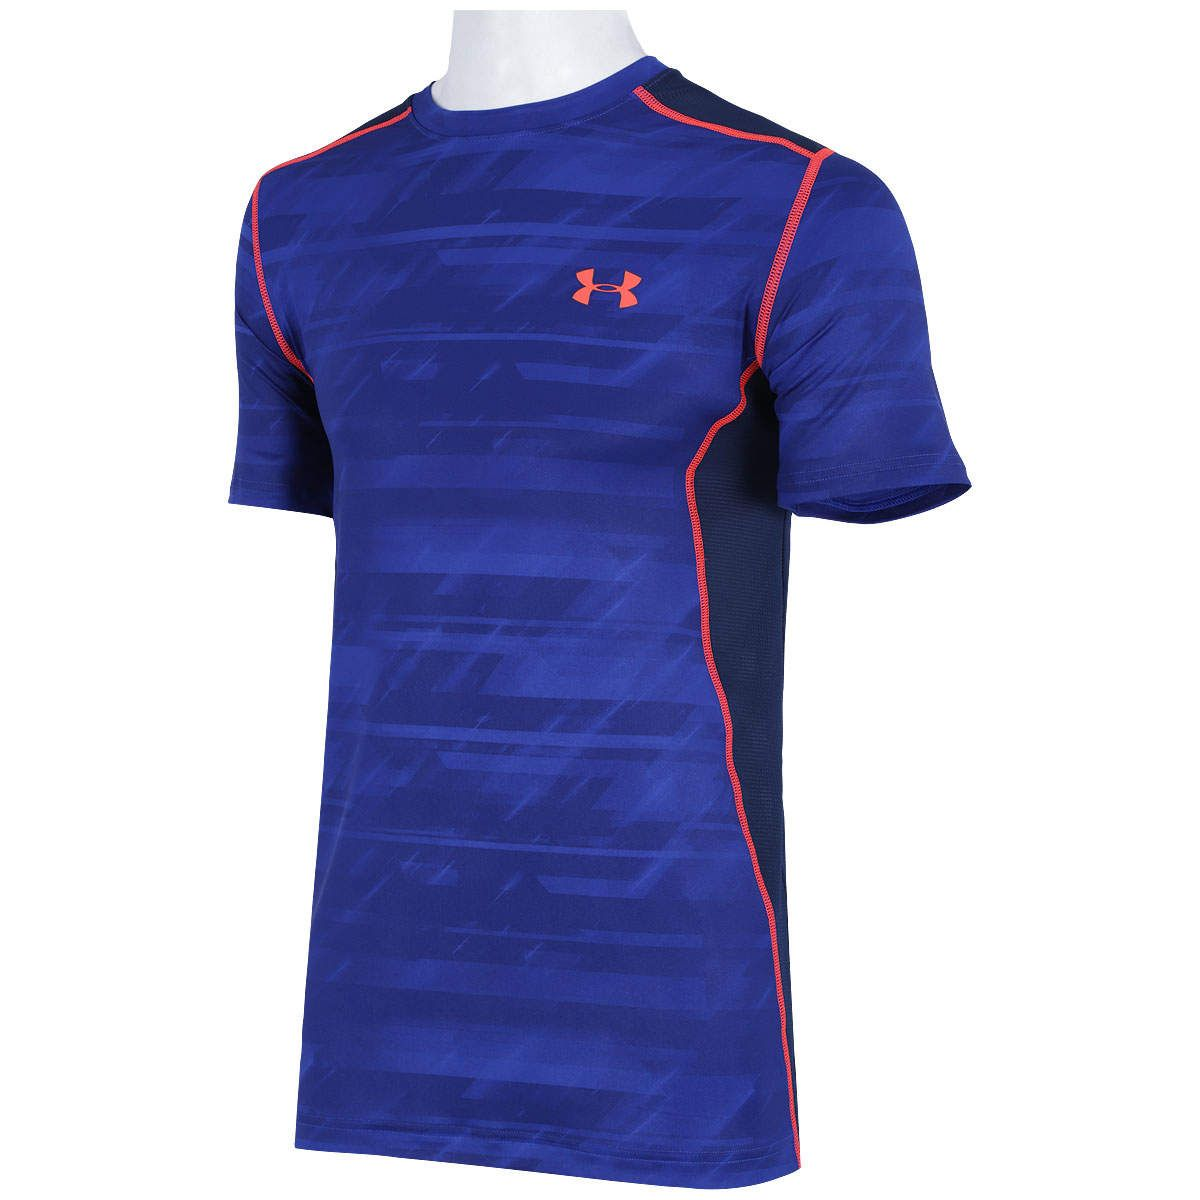 7041abefae Camiseta Under Armour Raid - Masculina · Under ArmourArmoursSportT Shirts Shirt